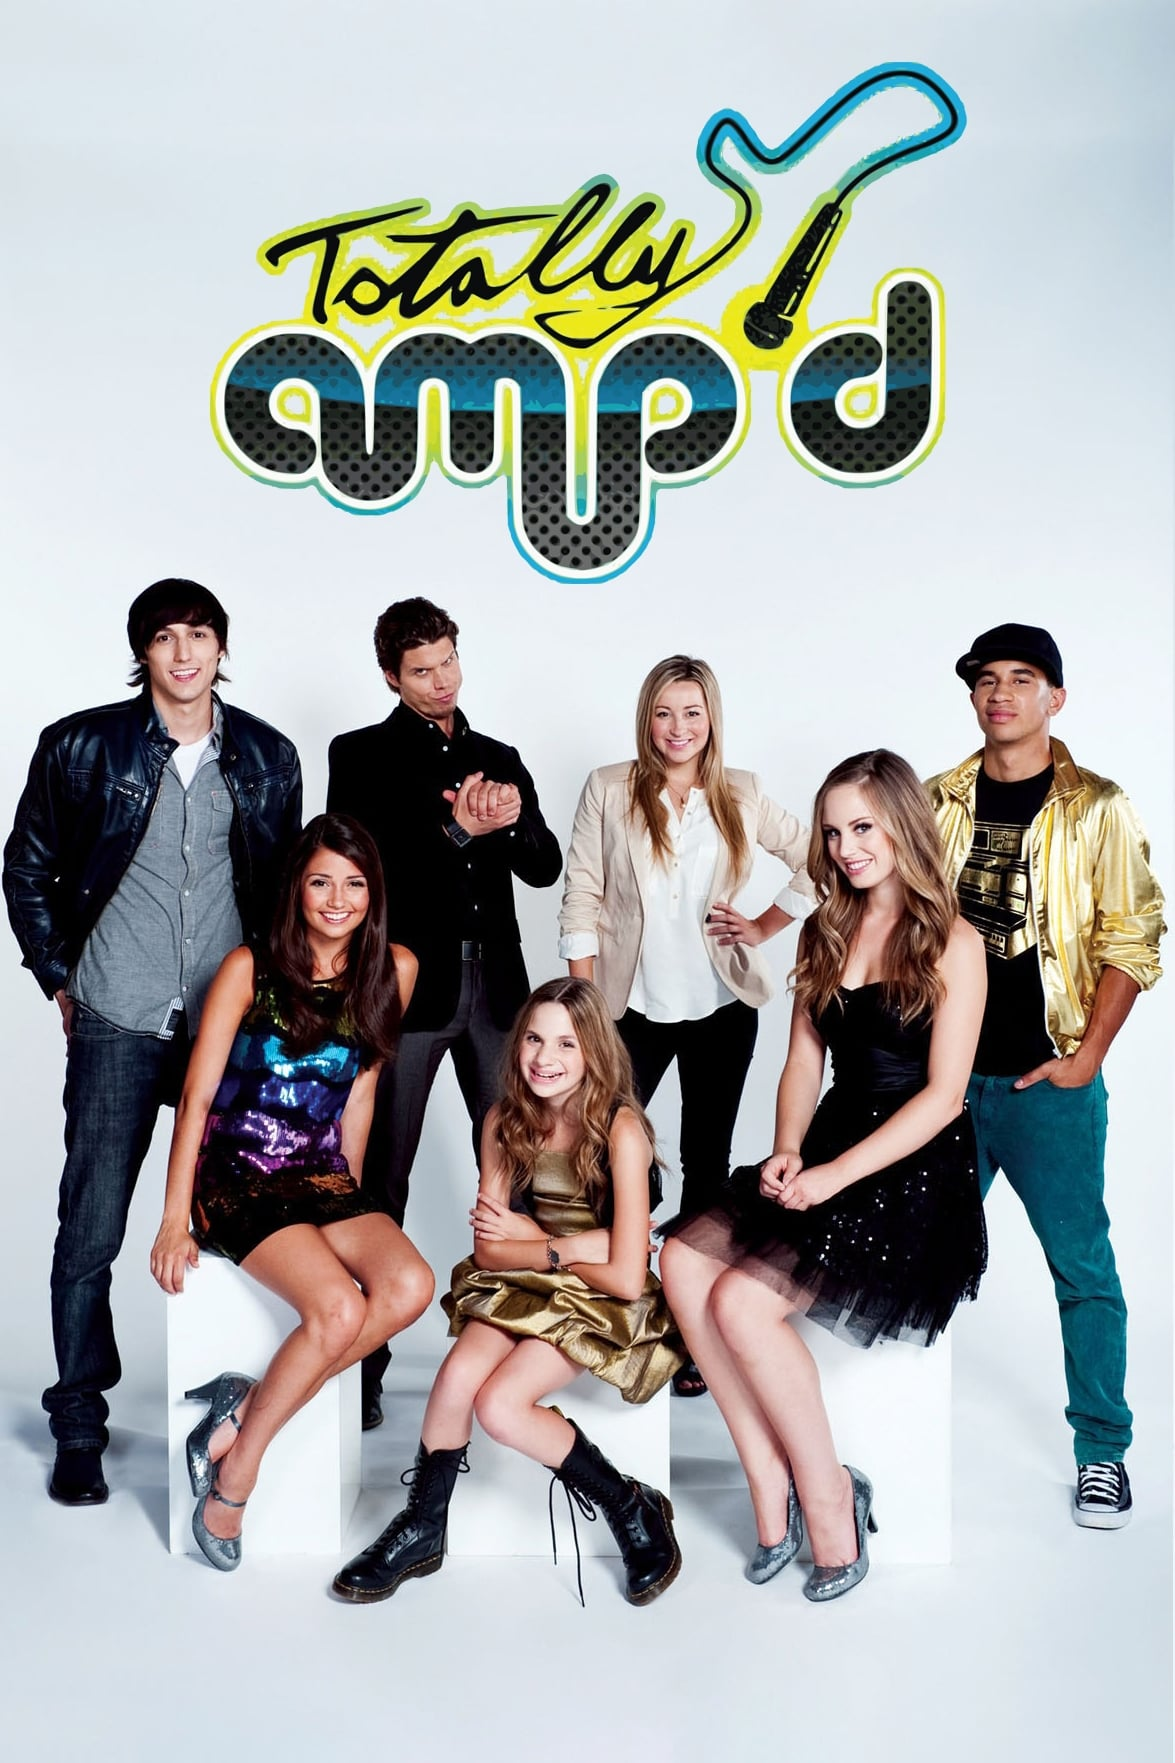 Totally Amp'd (2011)